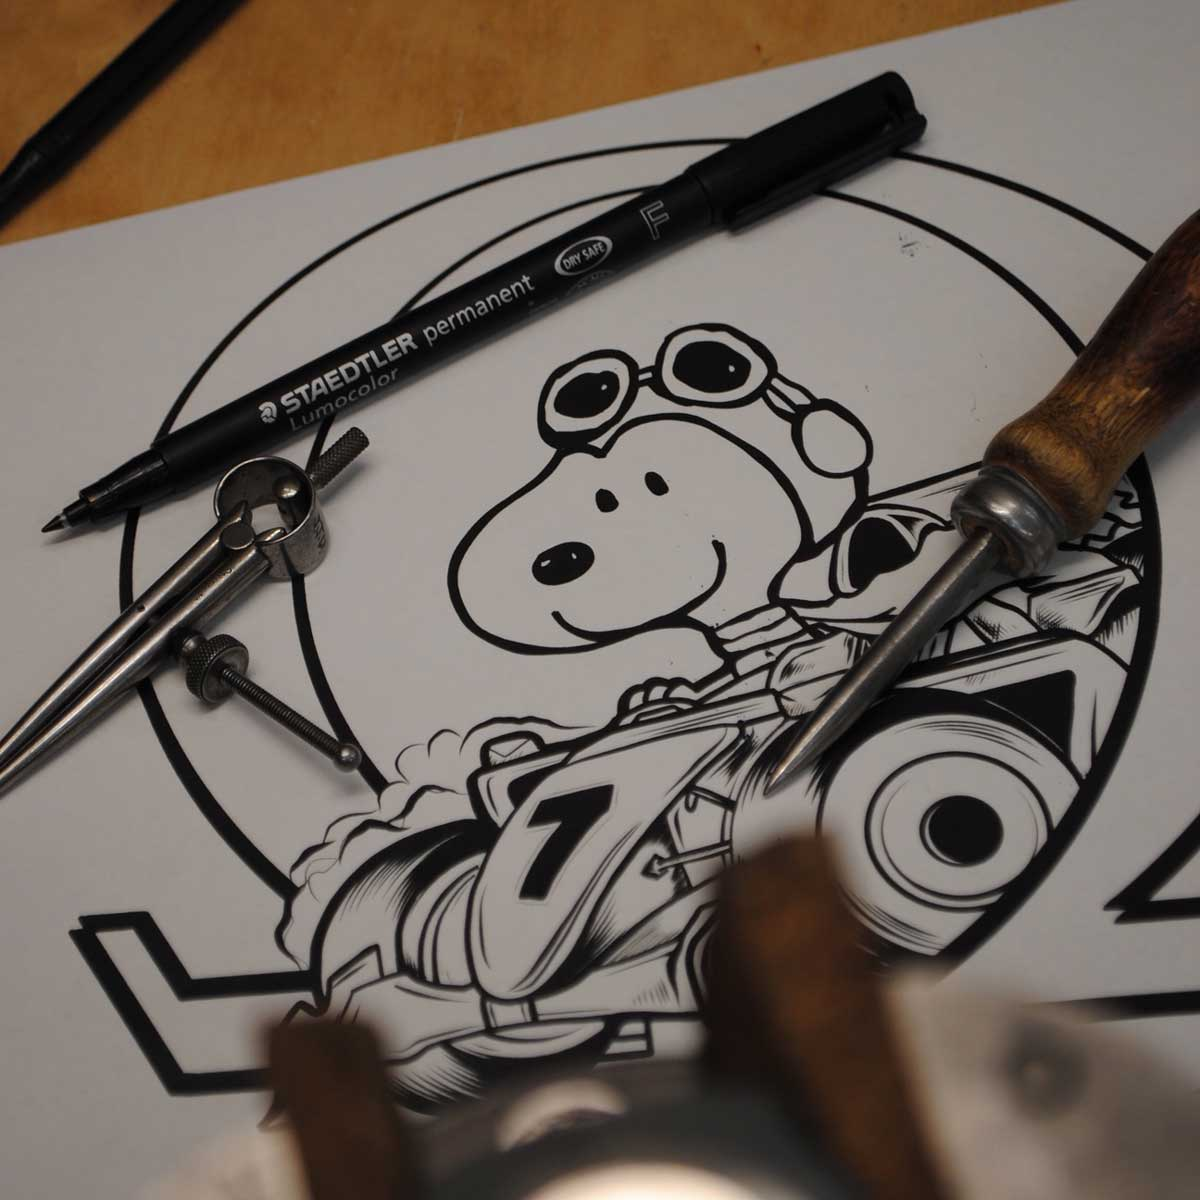 The design for the engraving features Snoopy in an F1 as Michael Schumacher